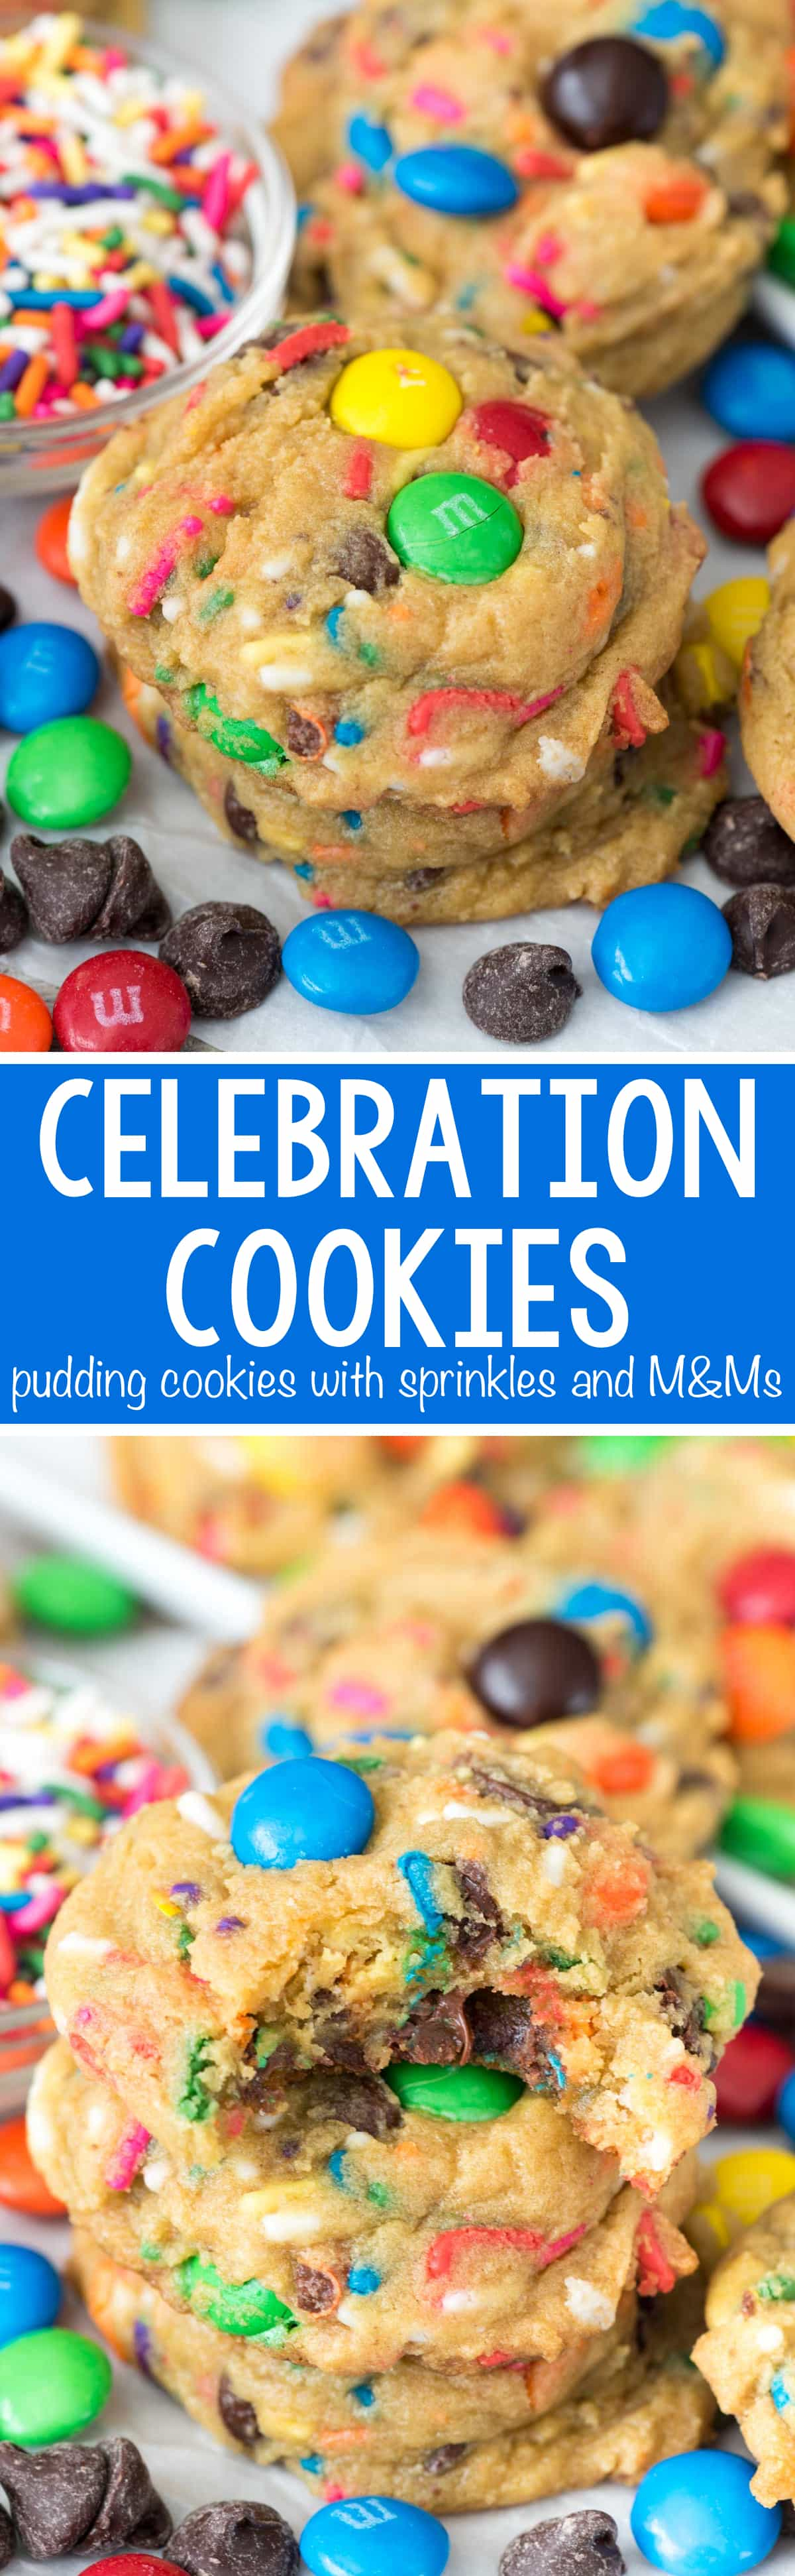 Celebration Pudding Cookies - this EASY pudding cookie recipe is filled with rainbow sprinkles and M&Ms. They're the perfect cookie to celebrate every day!